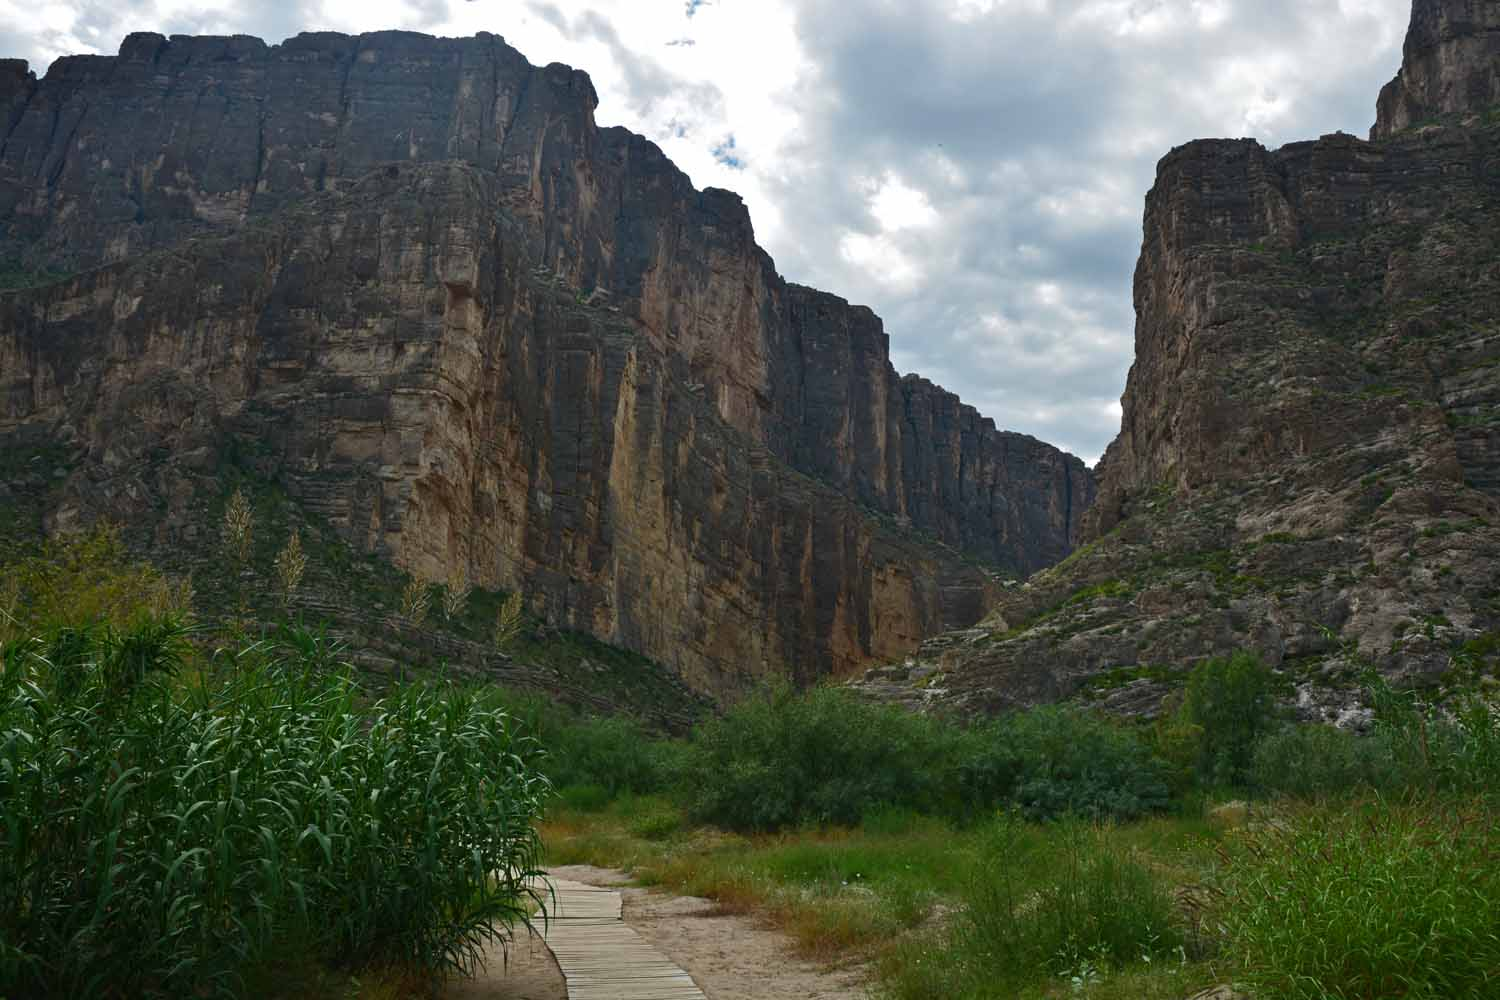 Santa Elena Canyon with the Rio Grande running down the middle.